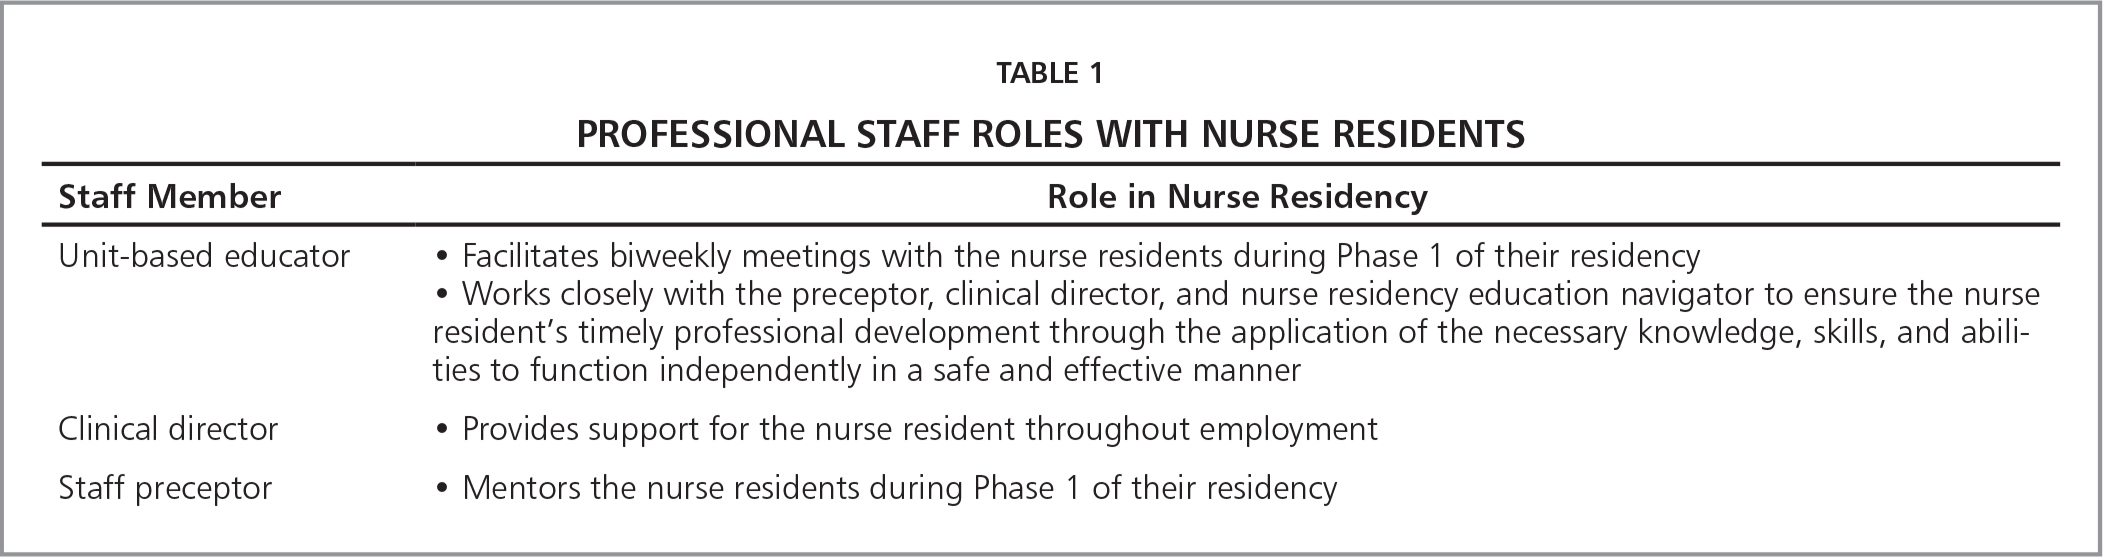 Professional Staff Roles with Nurse Residents